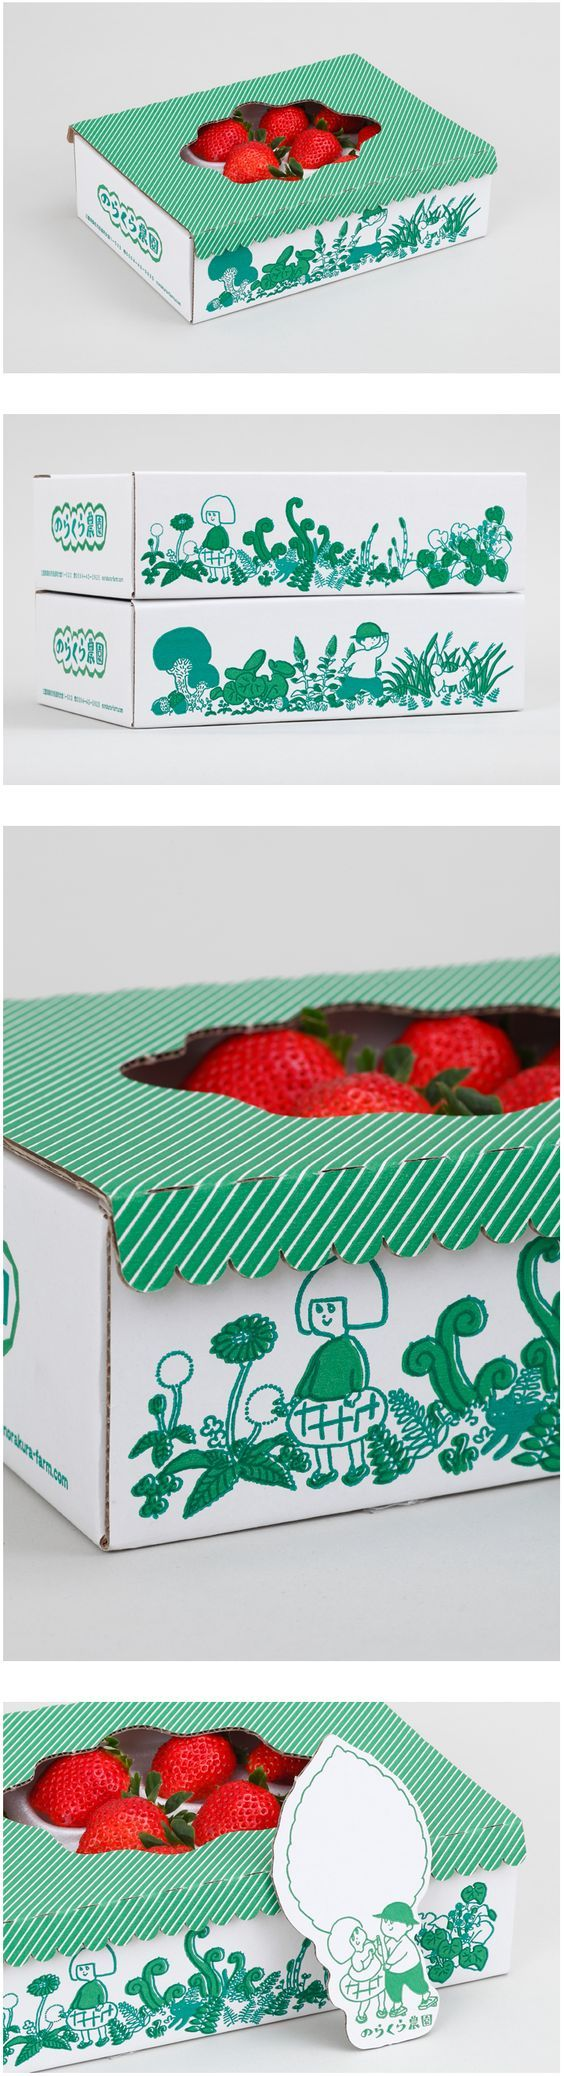 Custom Corrugated Boxes for Strawberries.